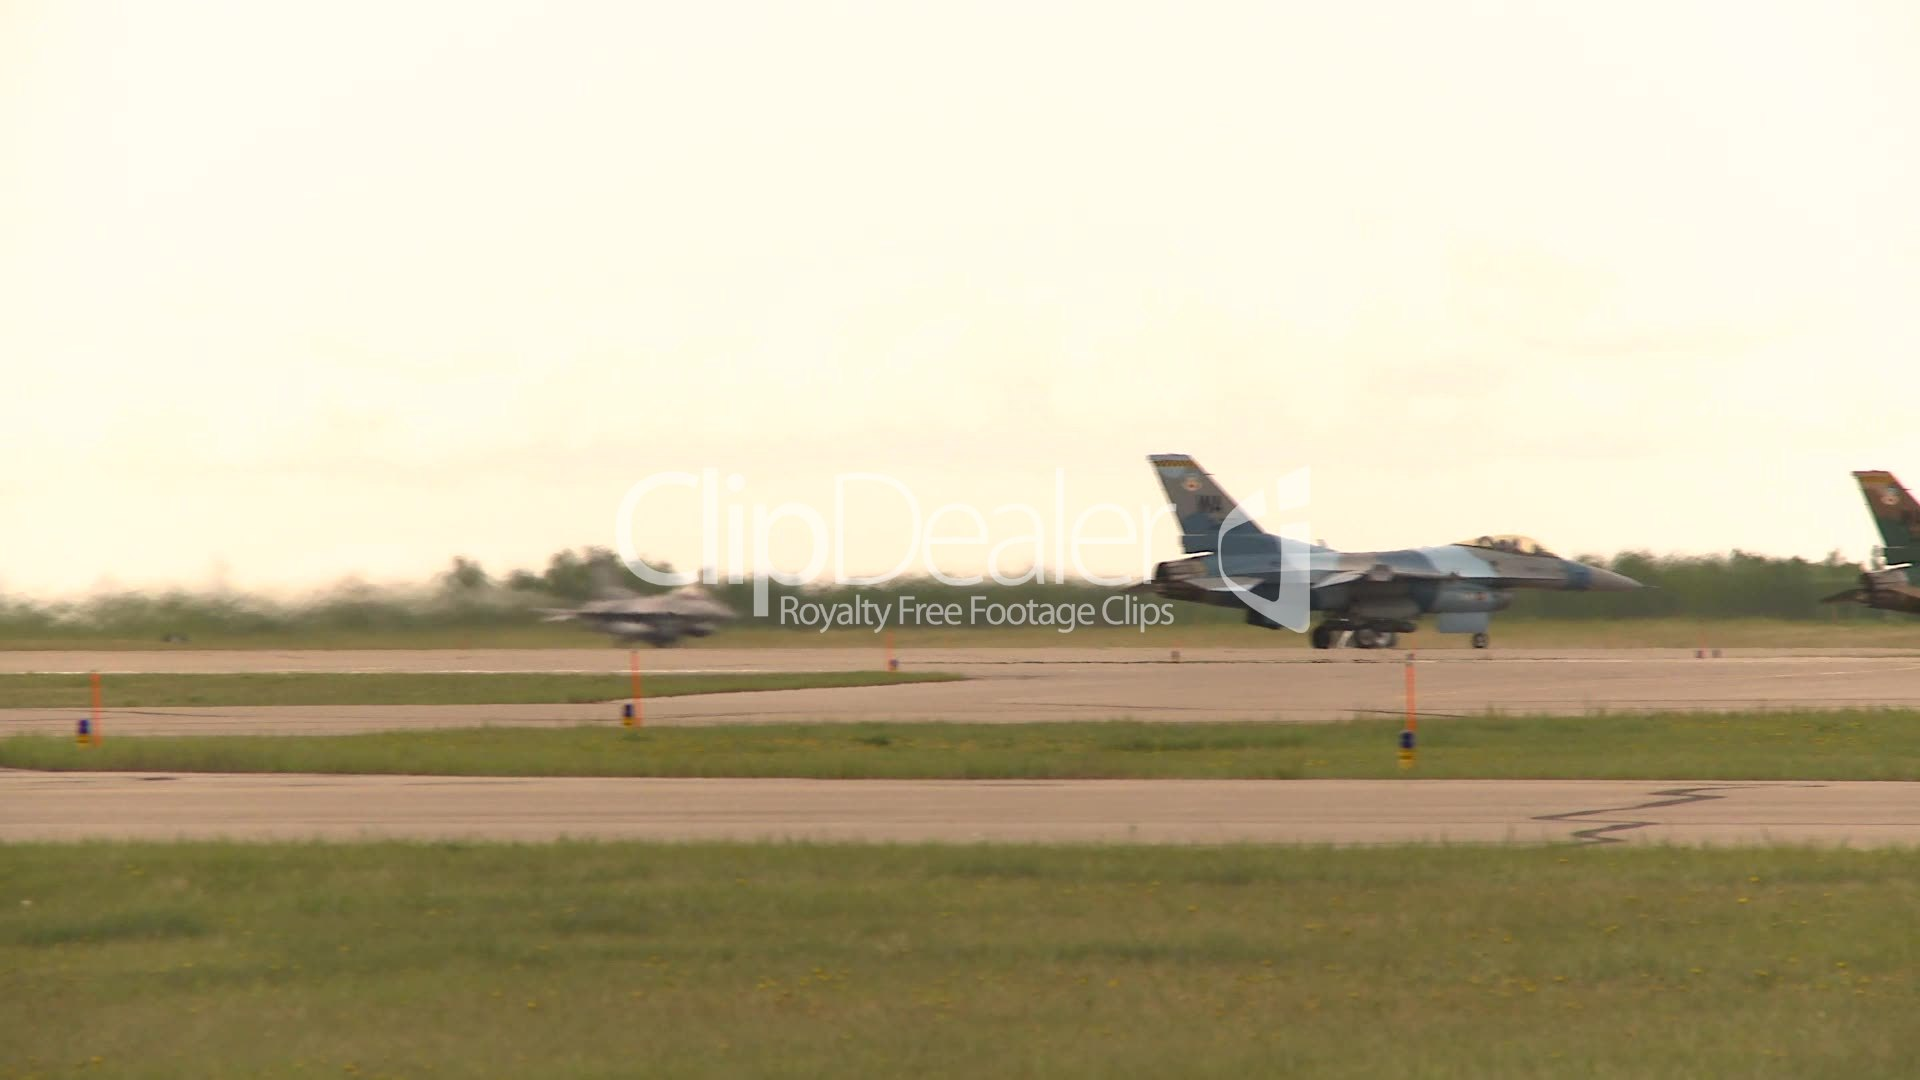 F16 takeoff: Royalty-free video and stock footage